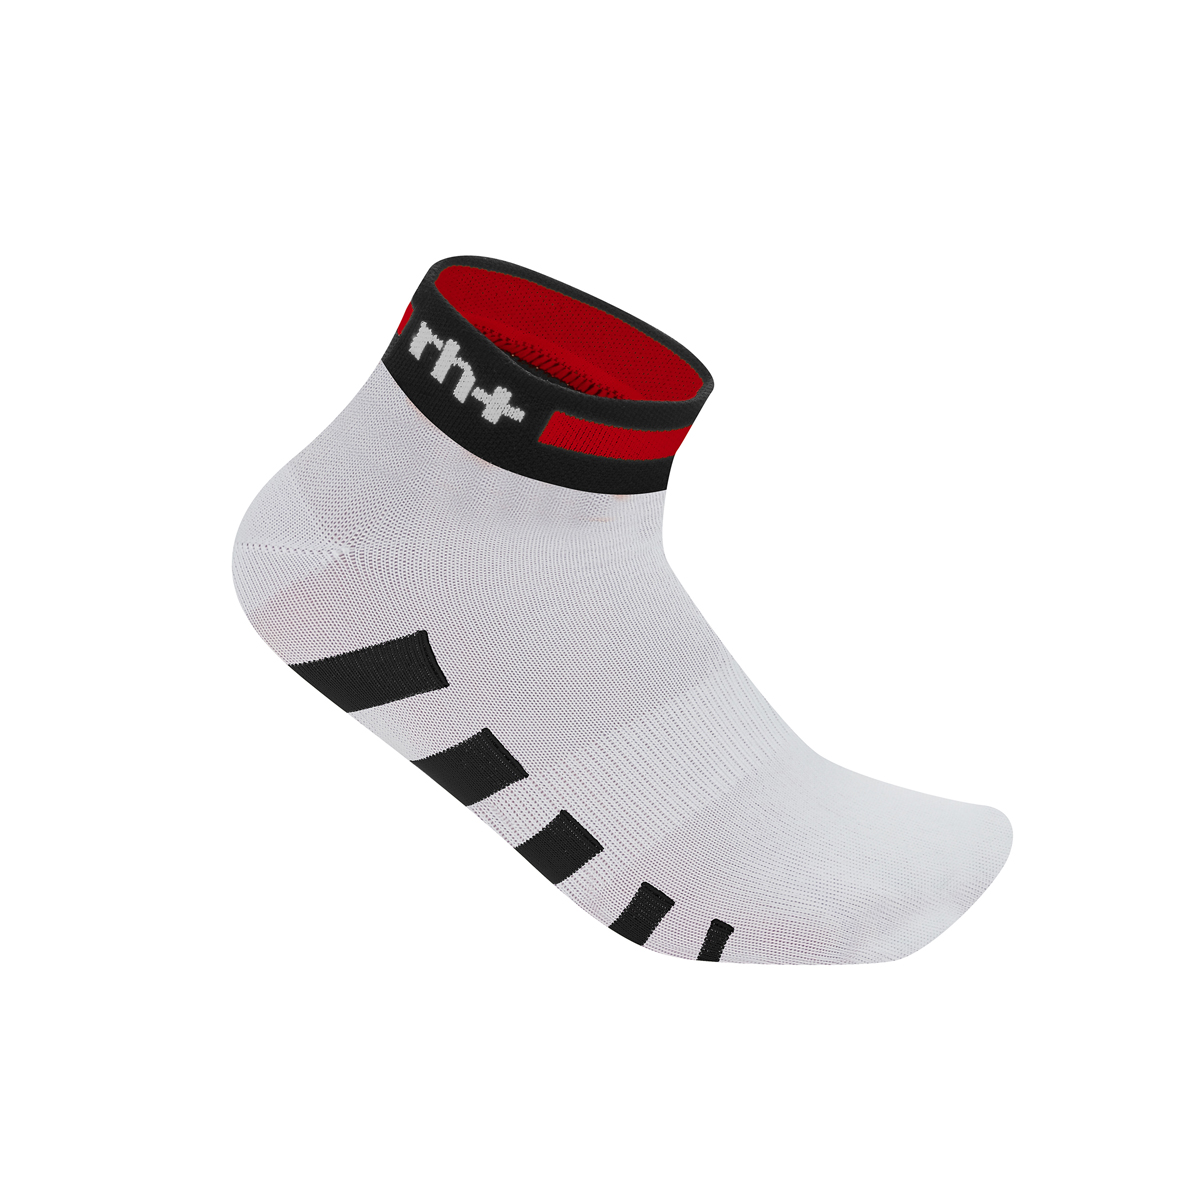 RH+ Ergo Sock white-red-black ECX9569-039